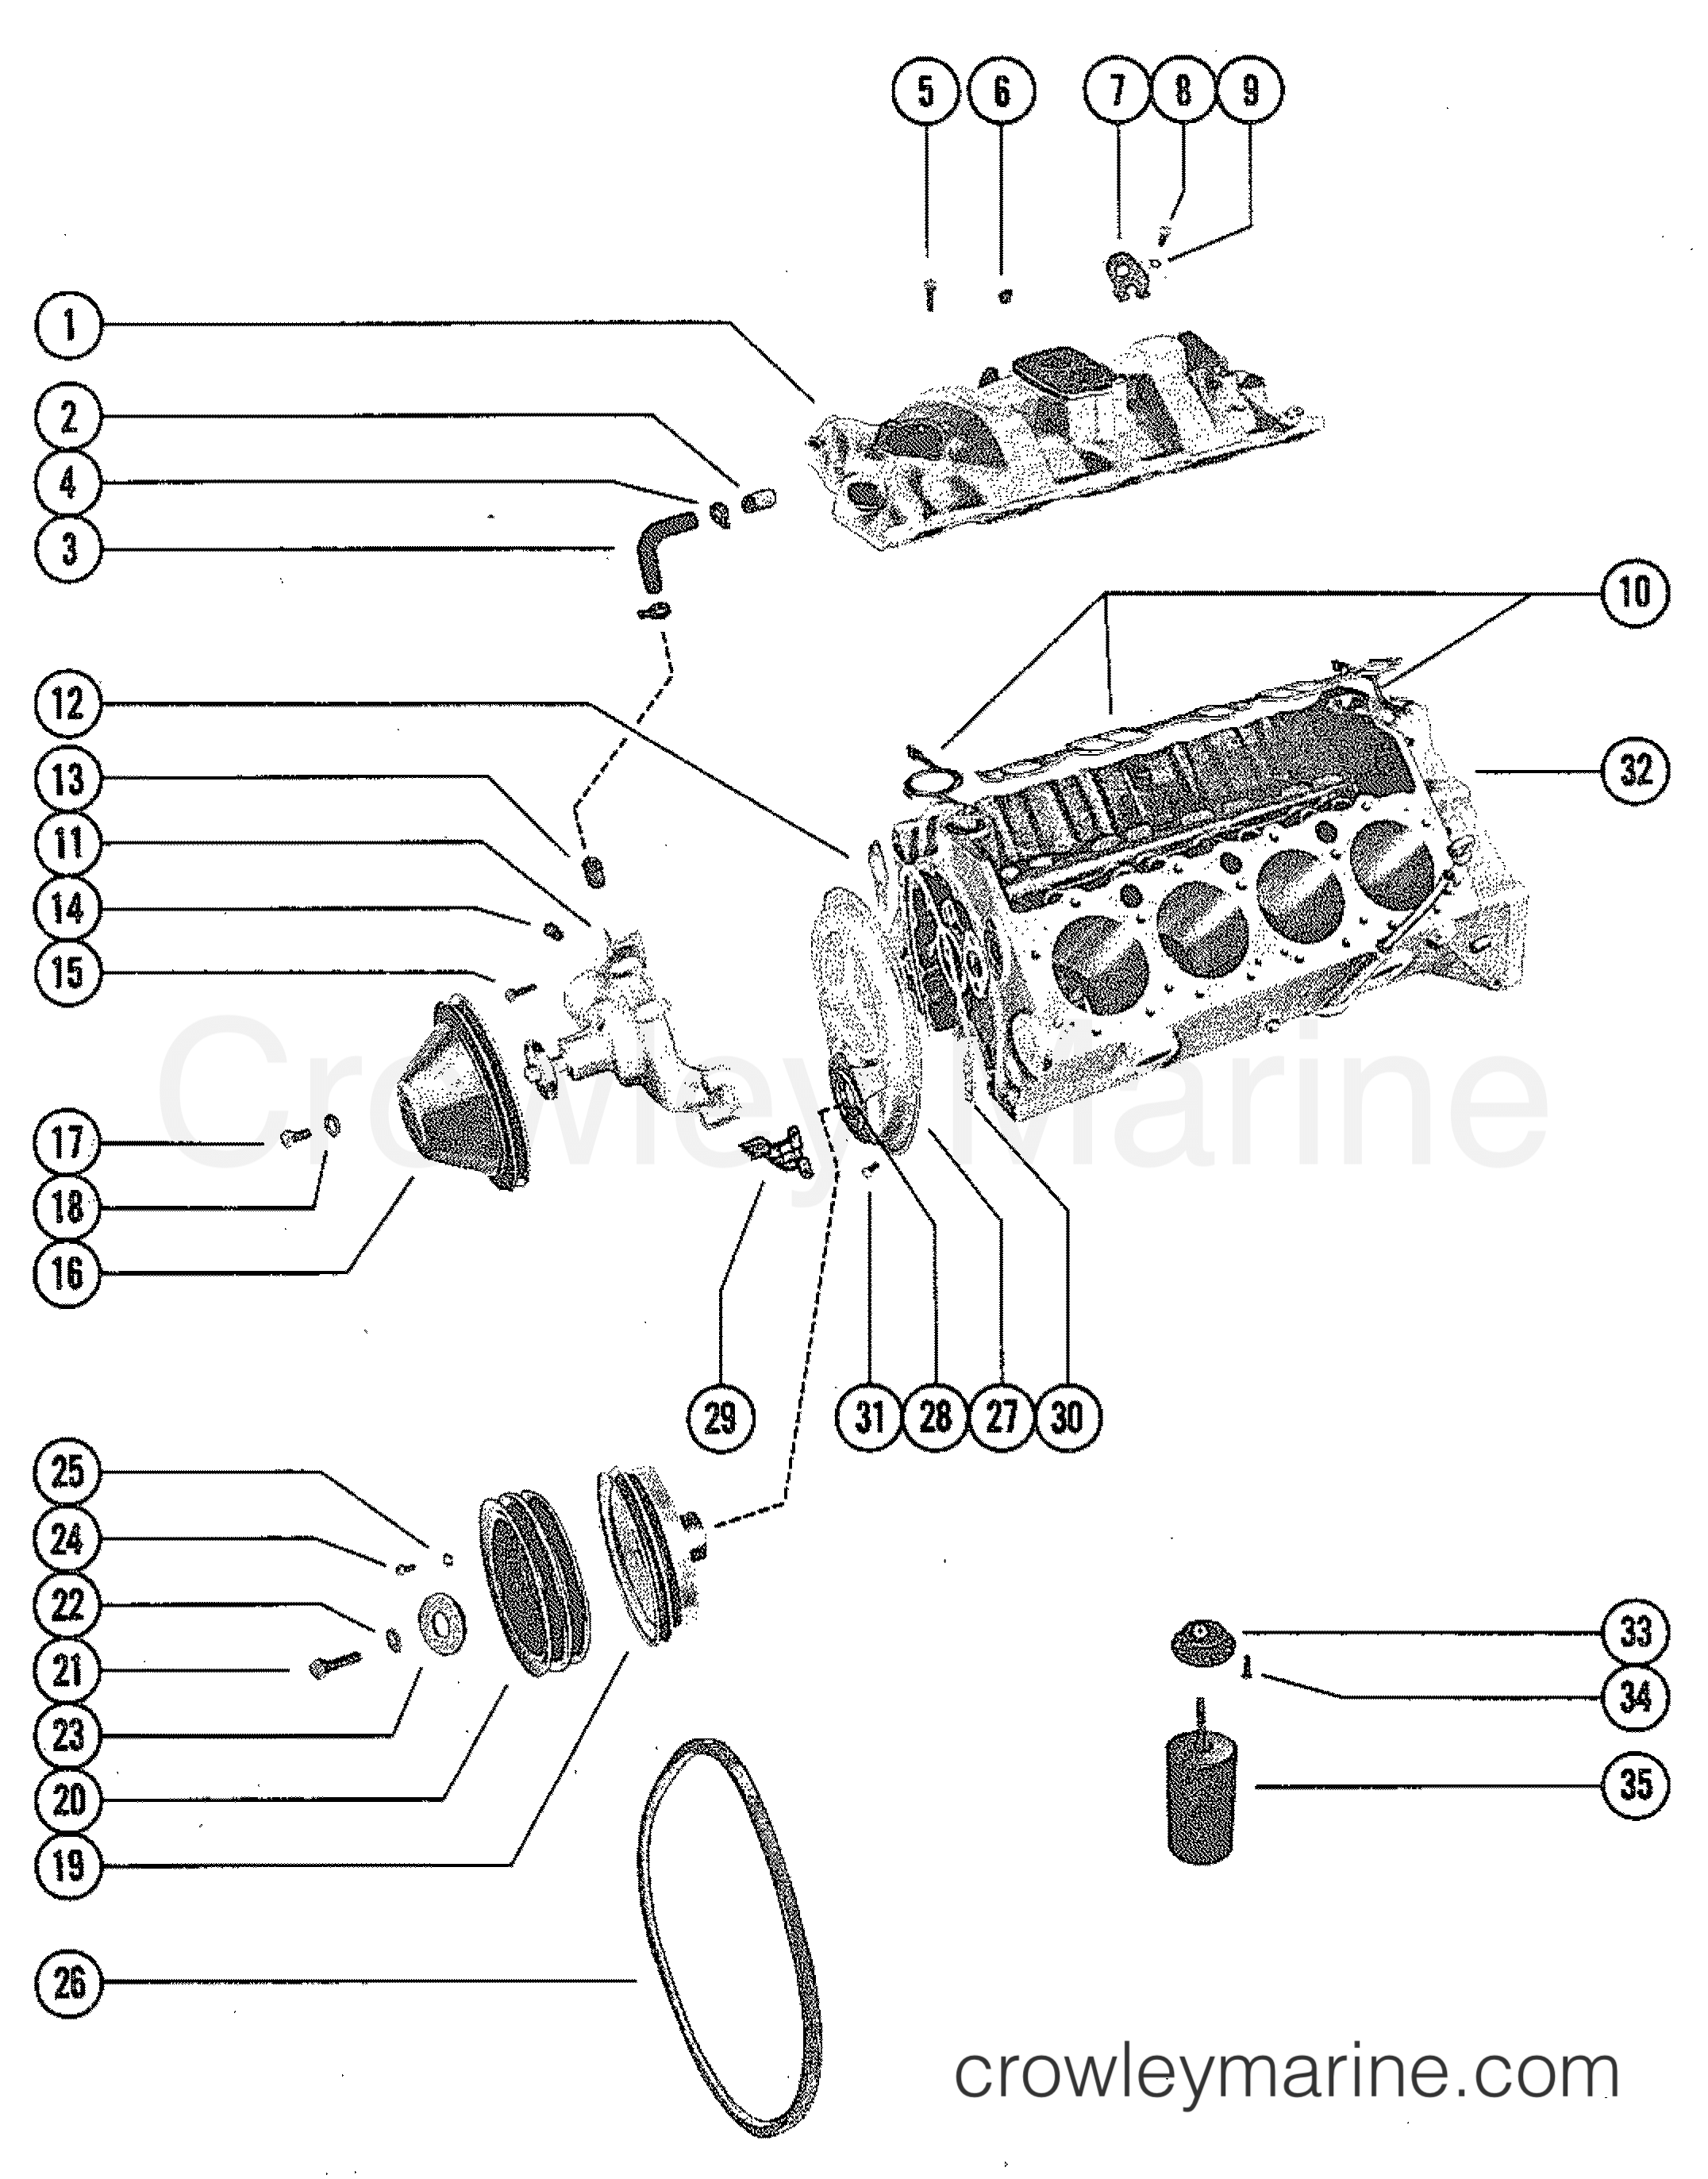 Intake Manifold And Water Pump Serial Range Mercruiser